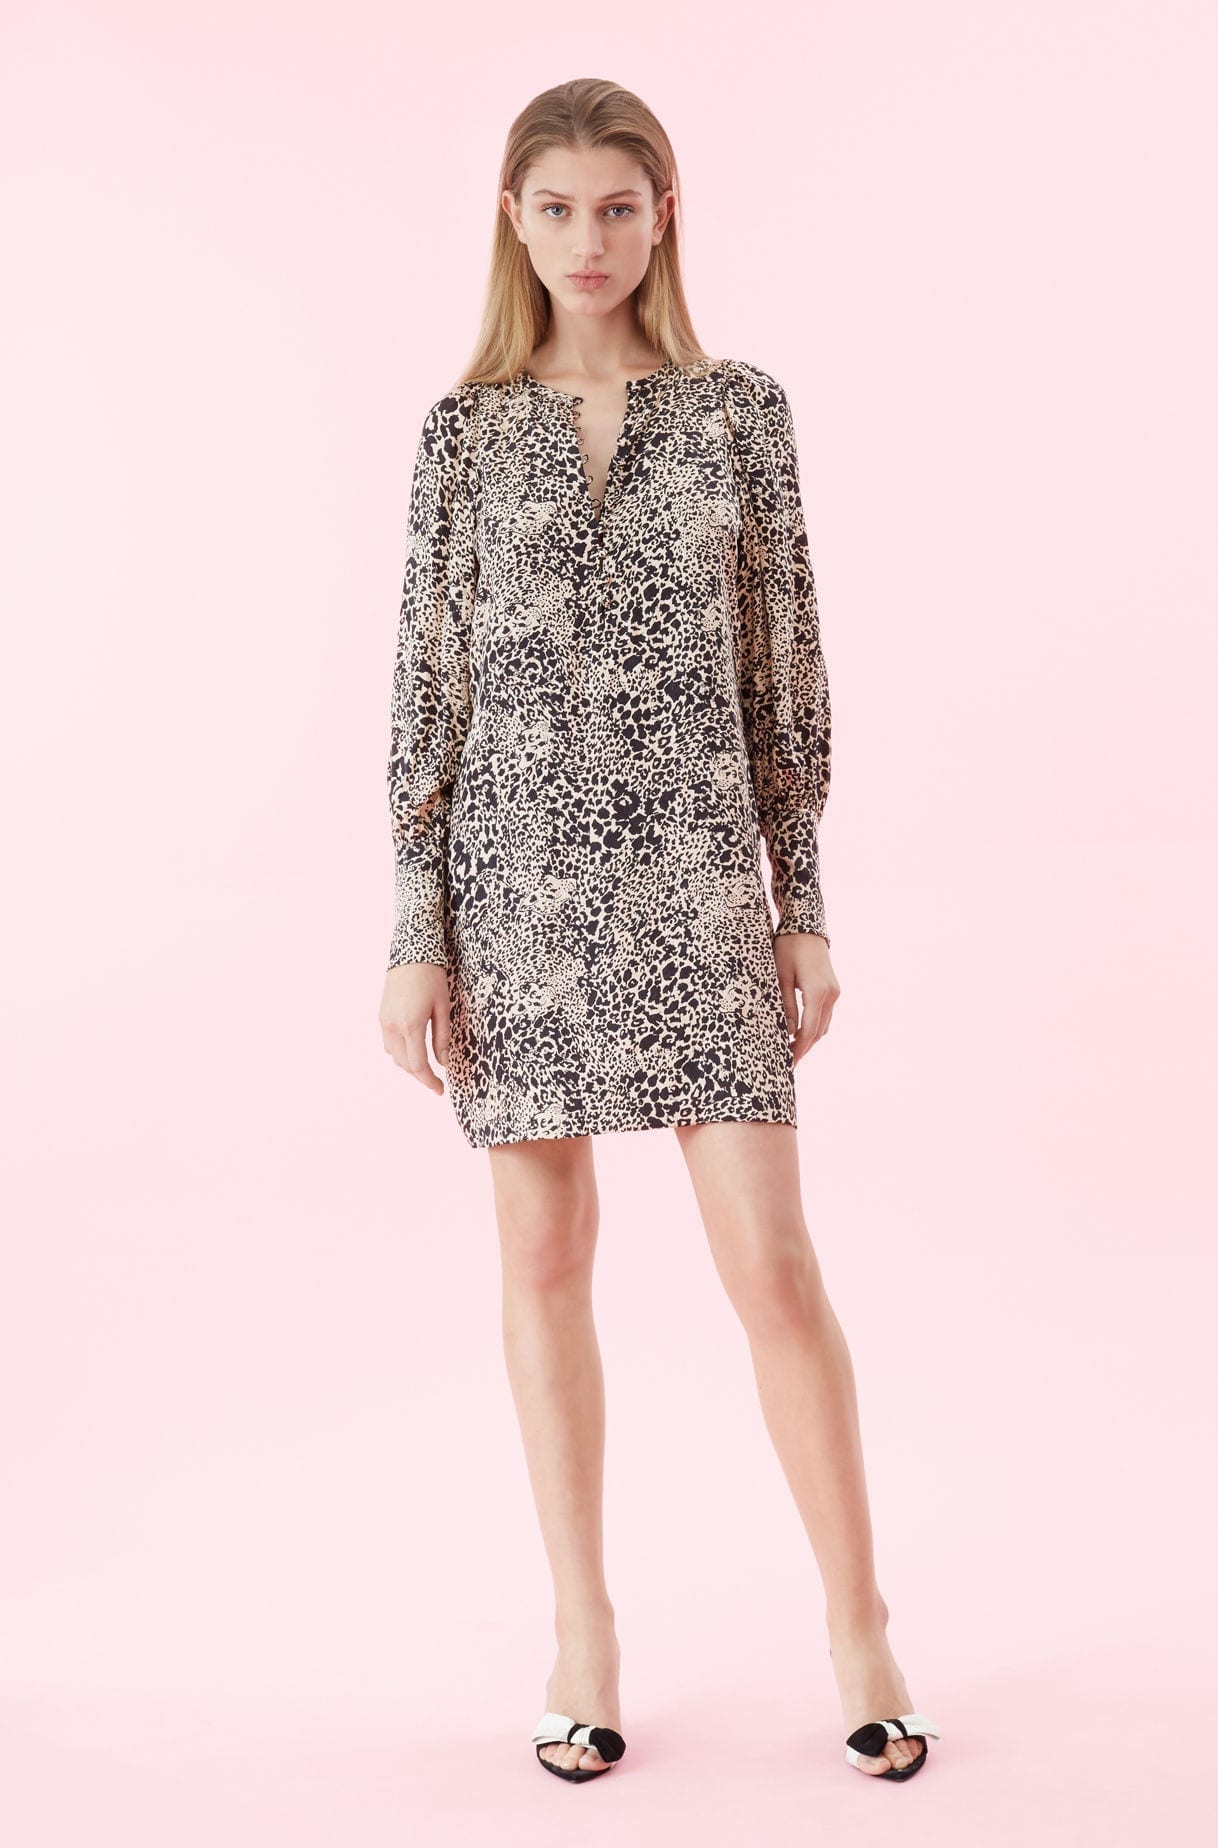 REBECCA TAYLOR Hidden Leopard Jacquard Champagne Dress